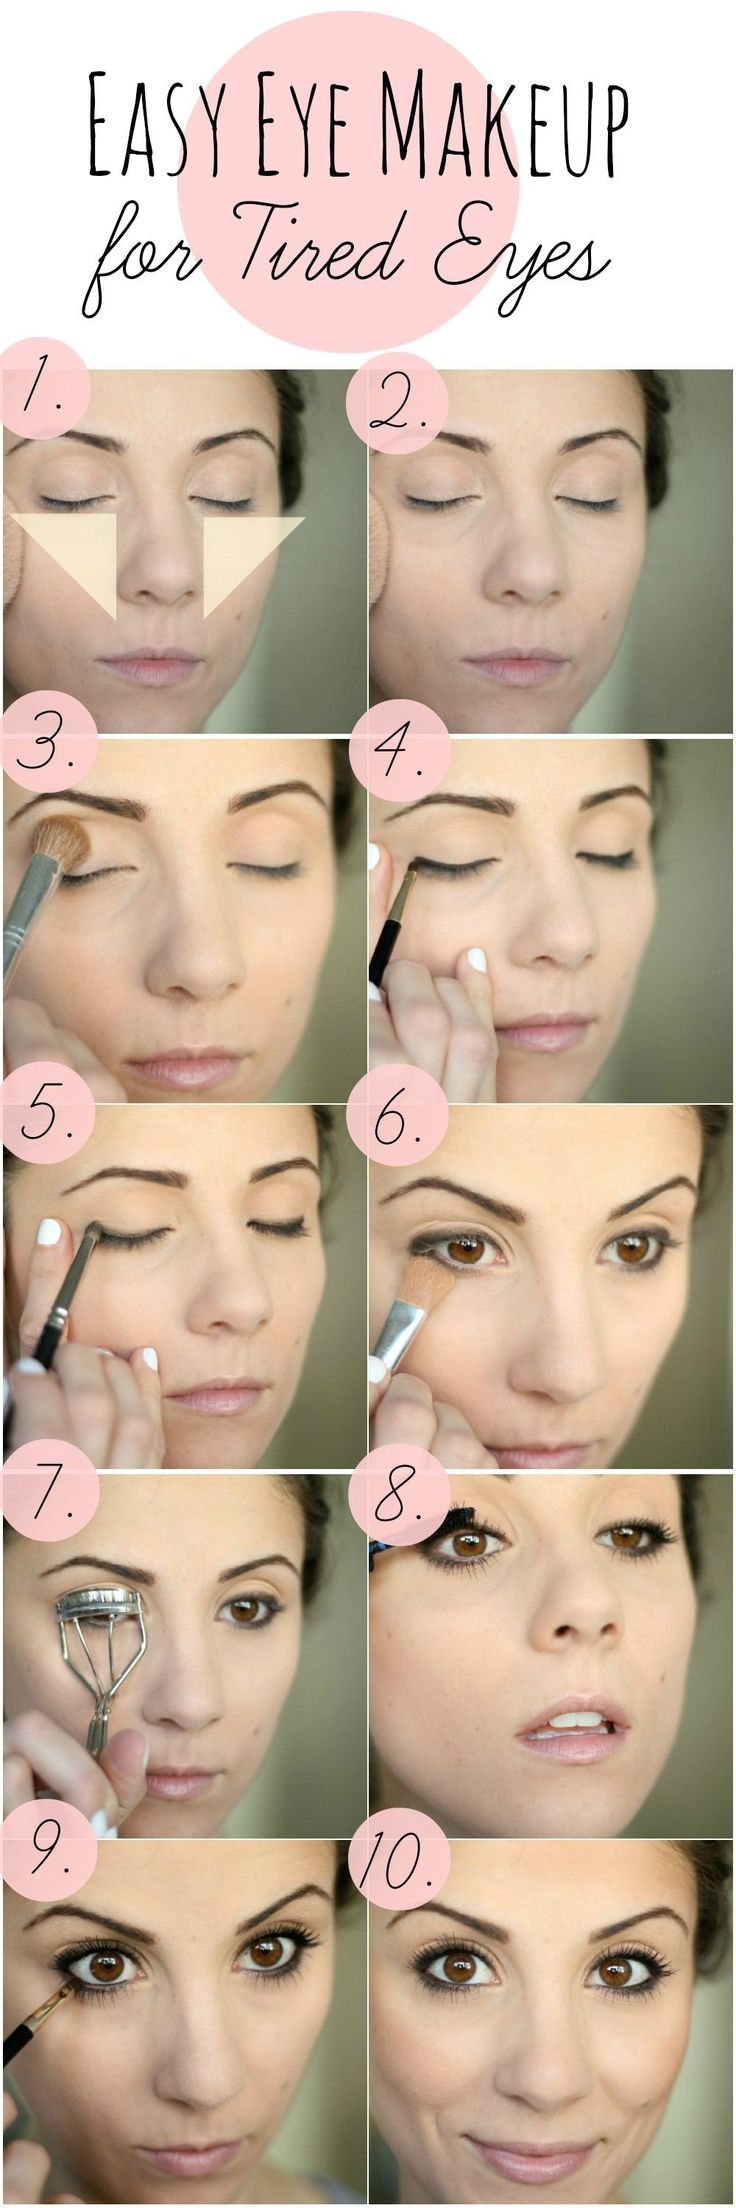 Best Beauty Tips and Makeup Ideas  - Eye Makeup for Tired Eyes: one bright colour on the lids, gel liner covered with a dark brown to soften the line.